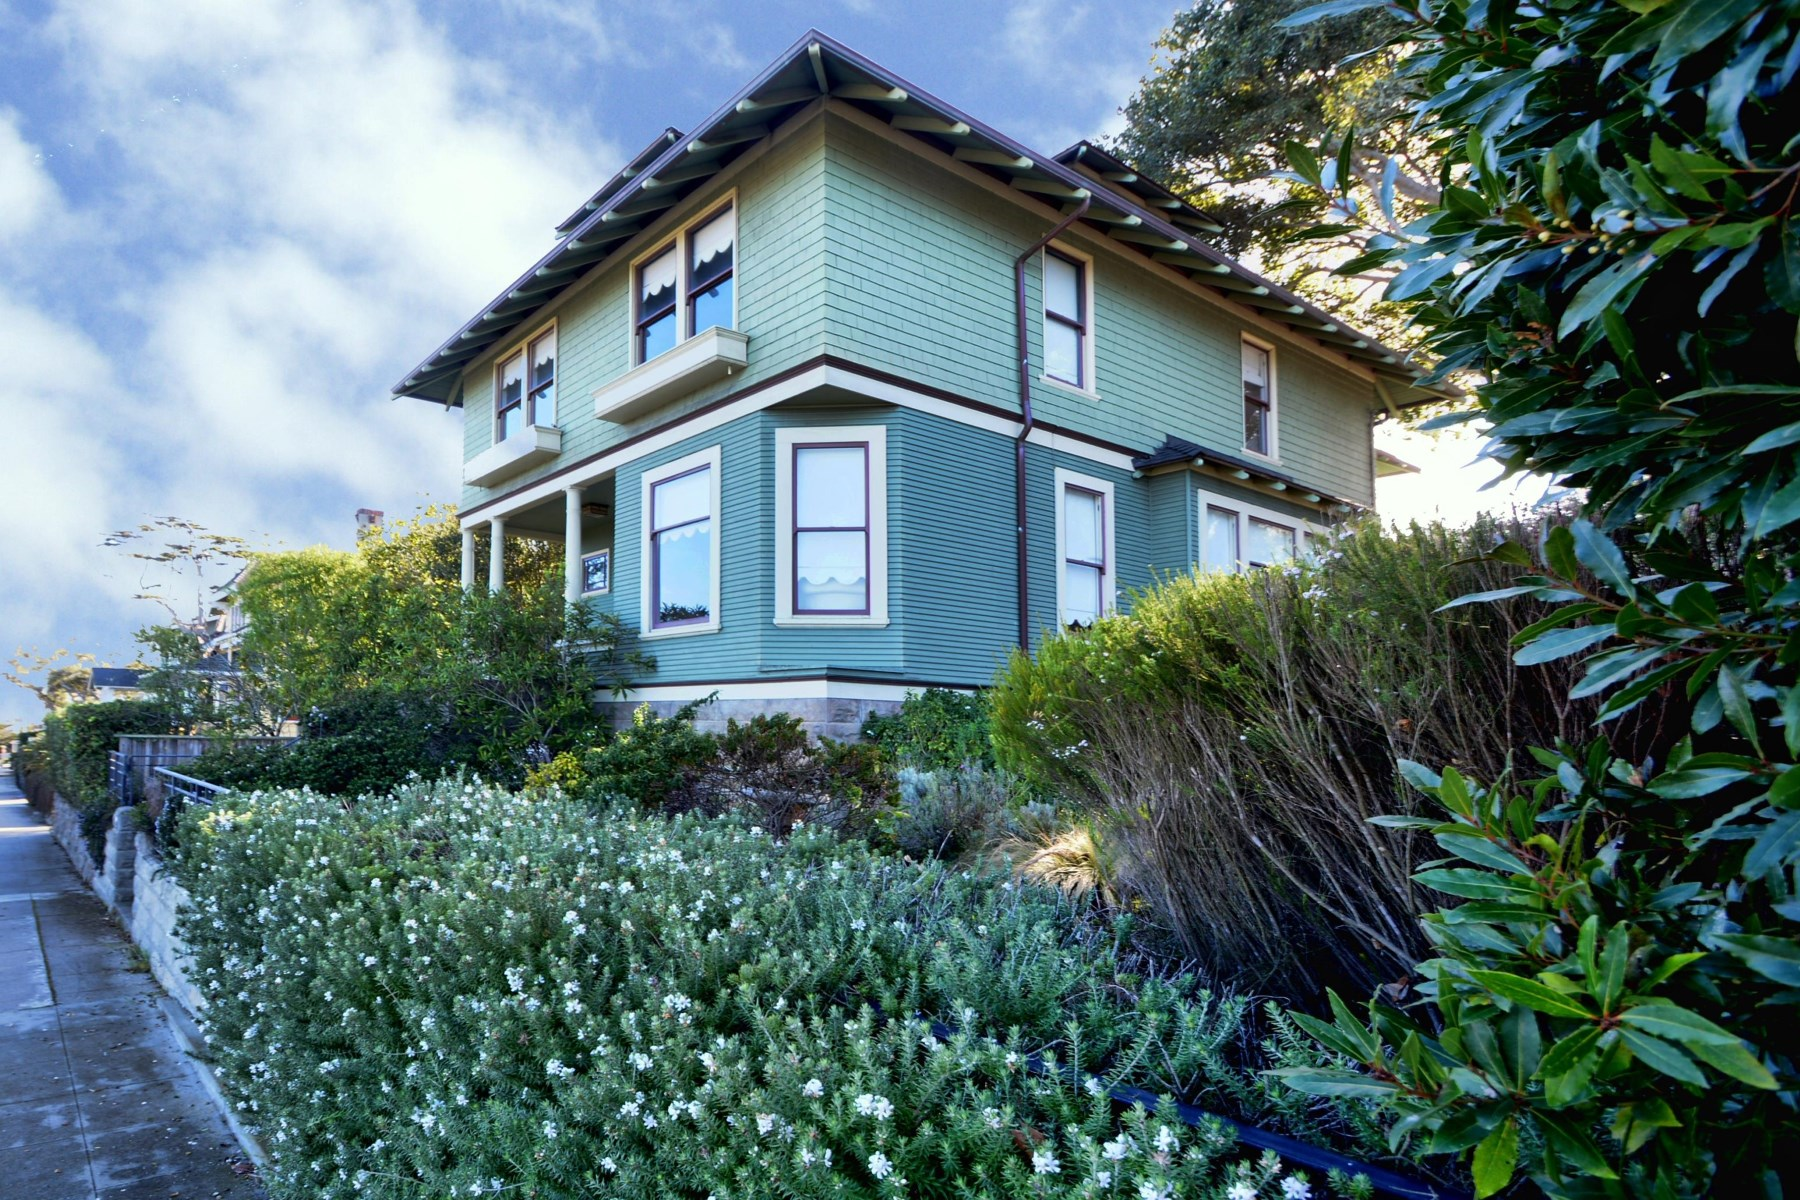 Maison unifamiliale pour l Vente à Historic Foursquare Victorian 189 Lighthouse Avenue Pacific Grove, Californie 93950 États-Unis